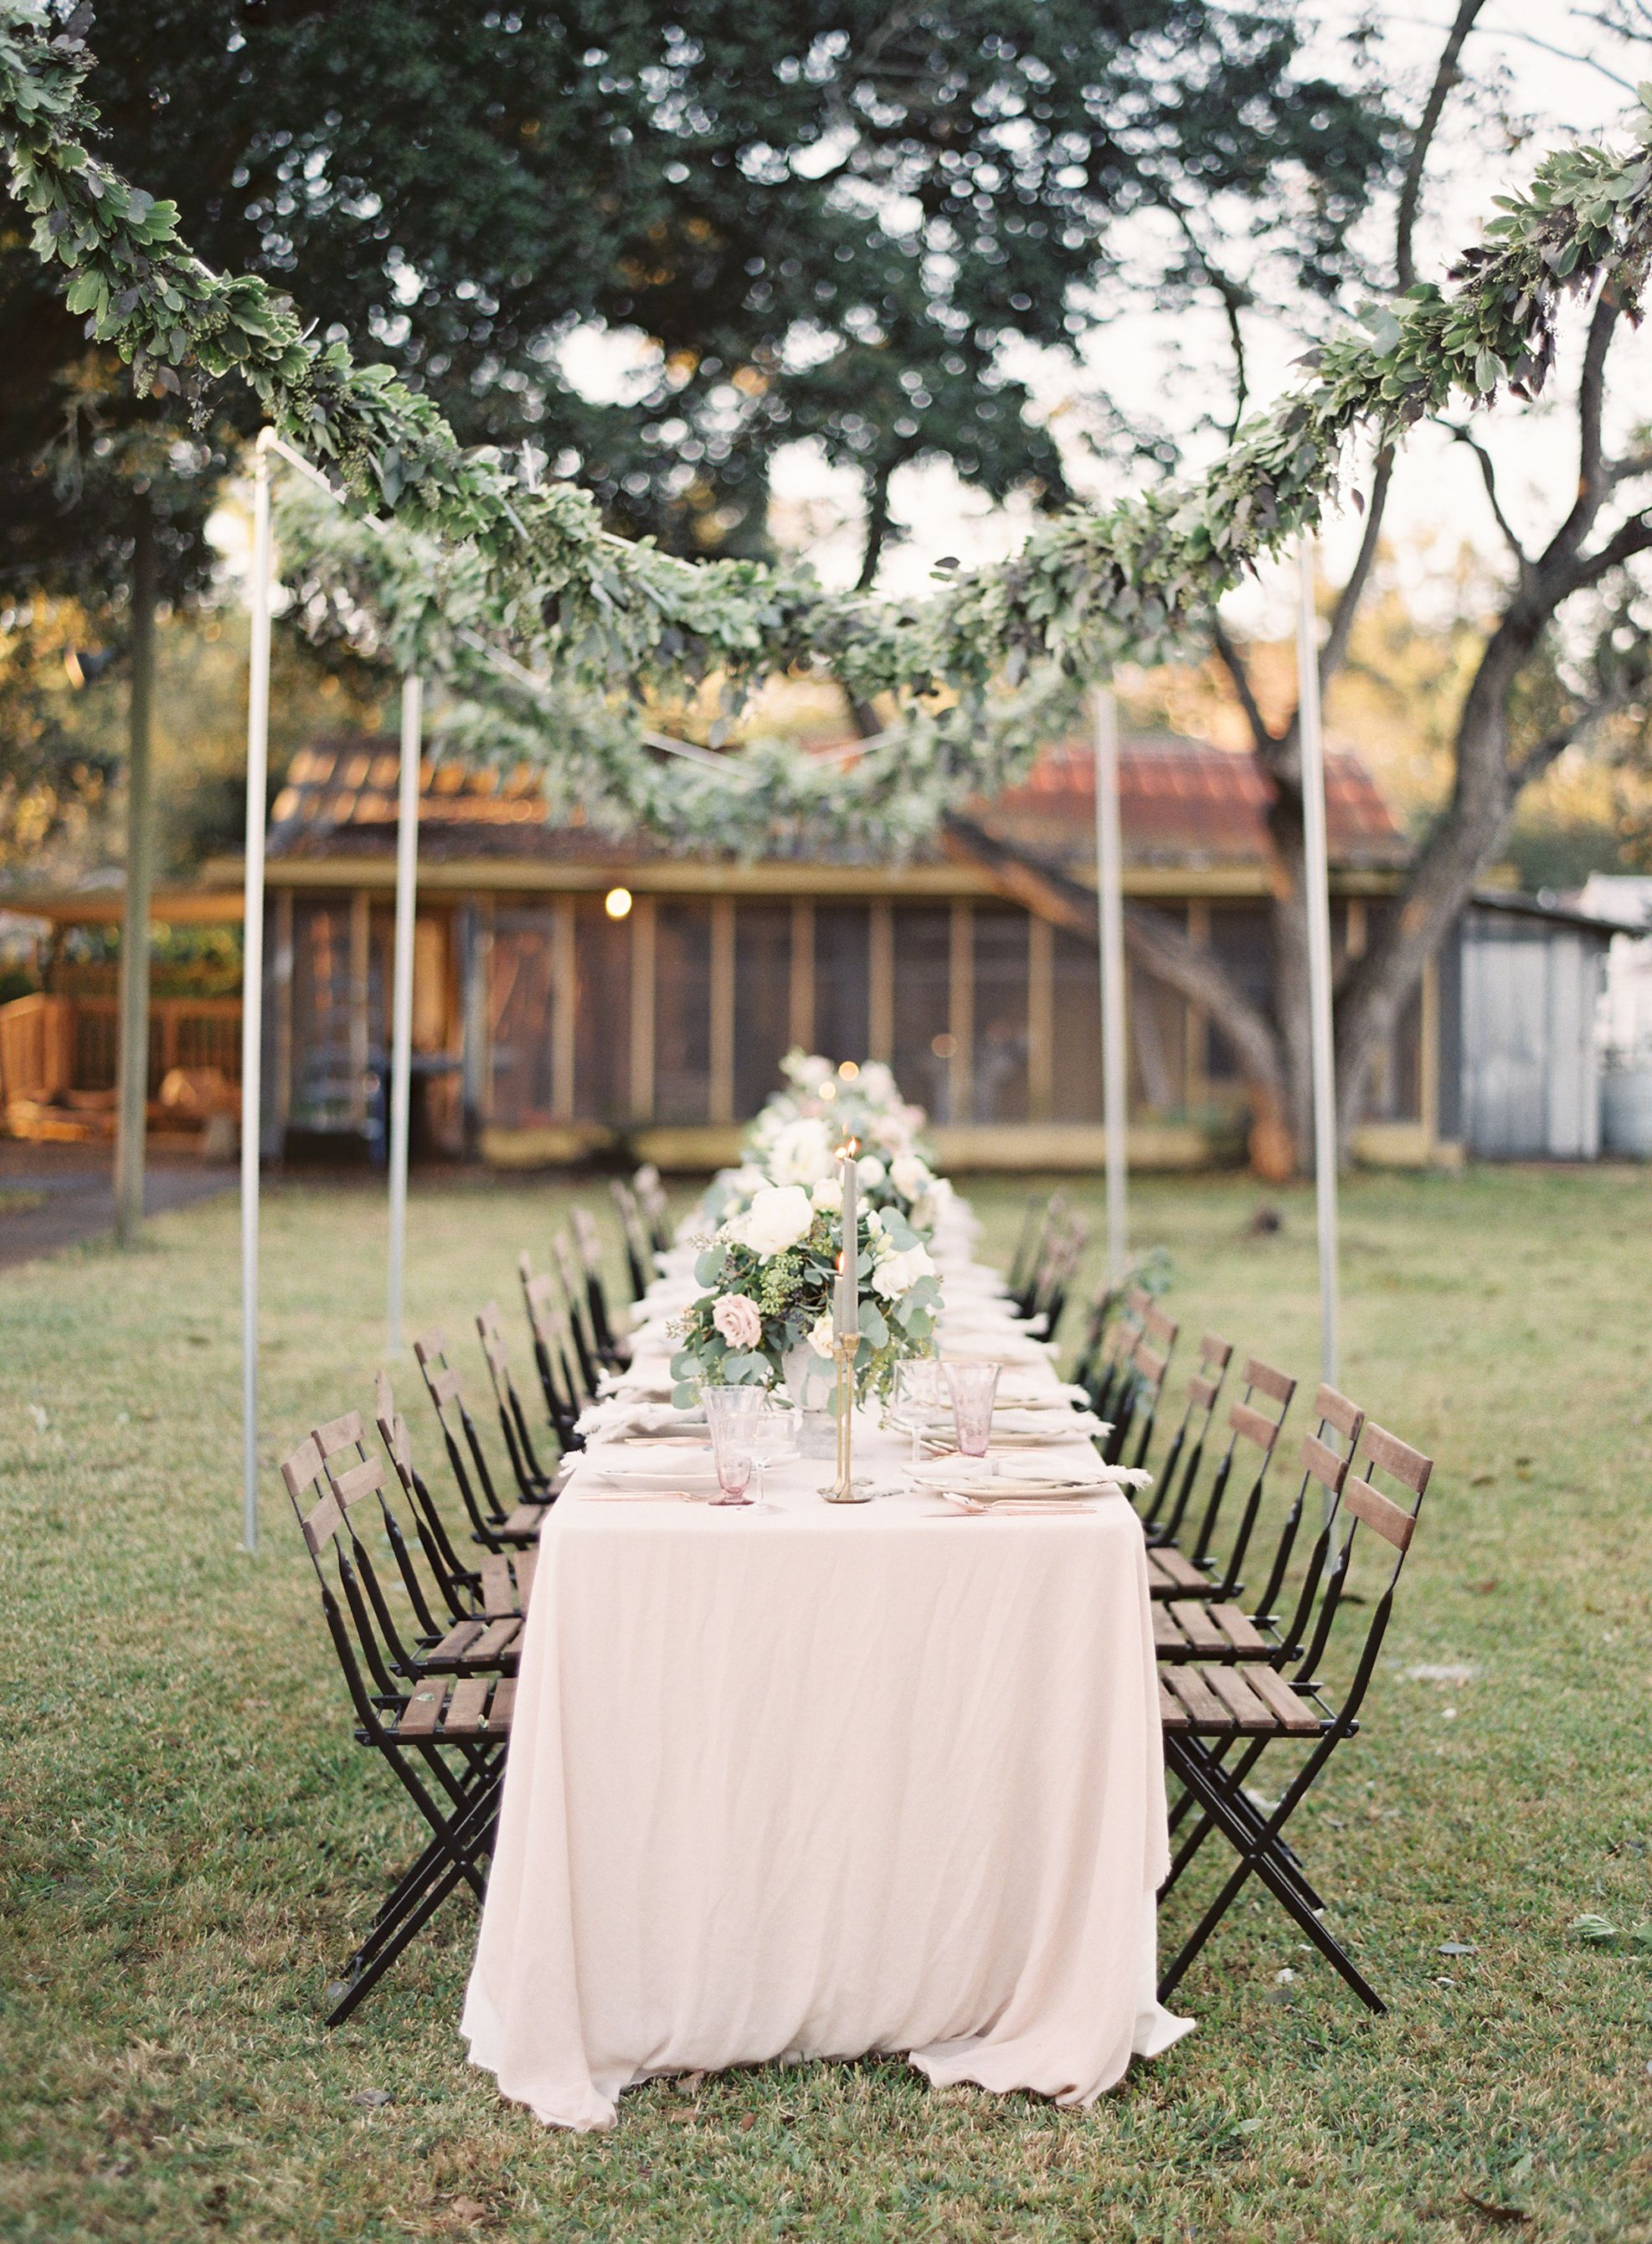 Maroon and white wedding decor  A Sweet Hometown Wedding with Personal Touches  Wedding Reception